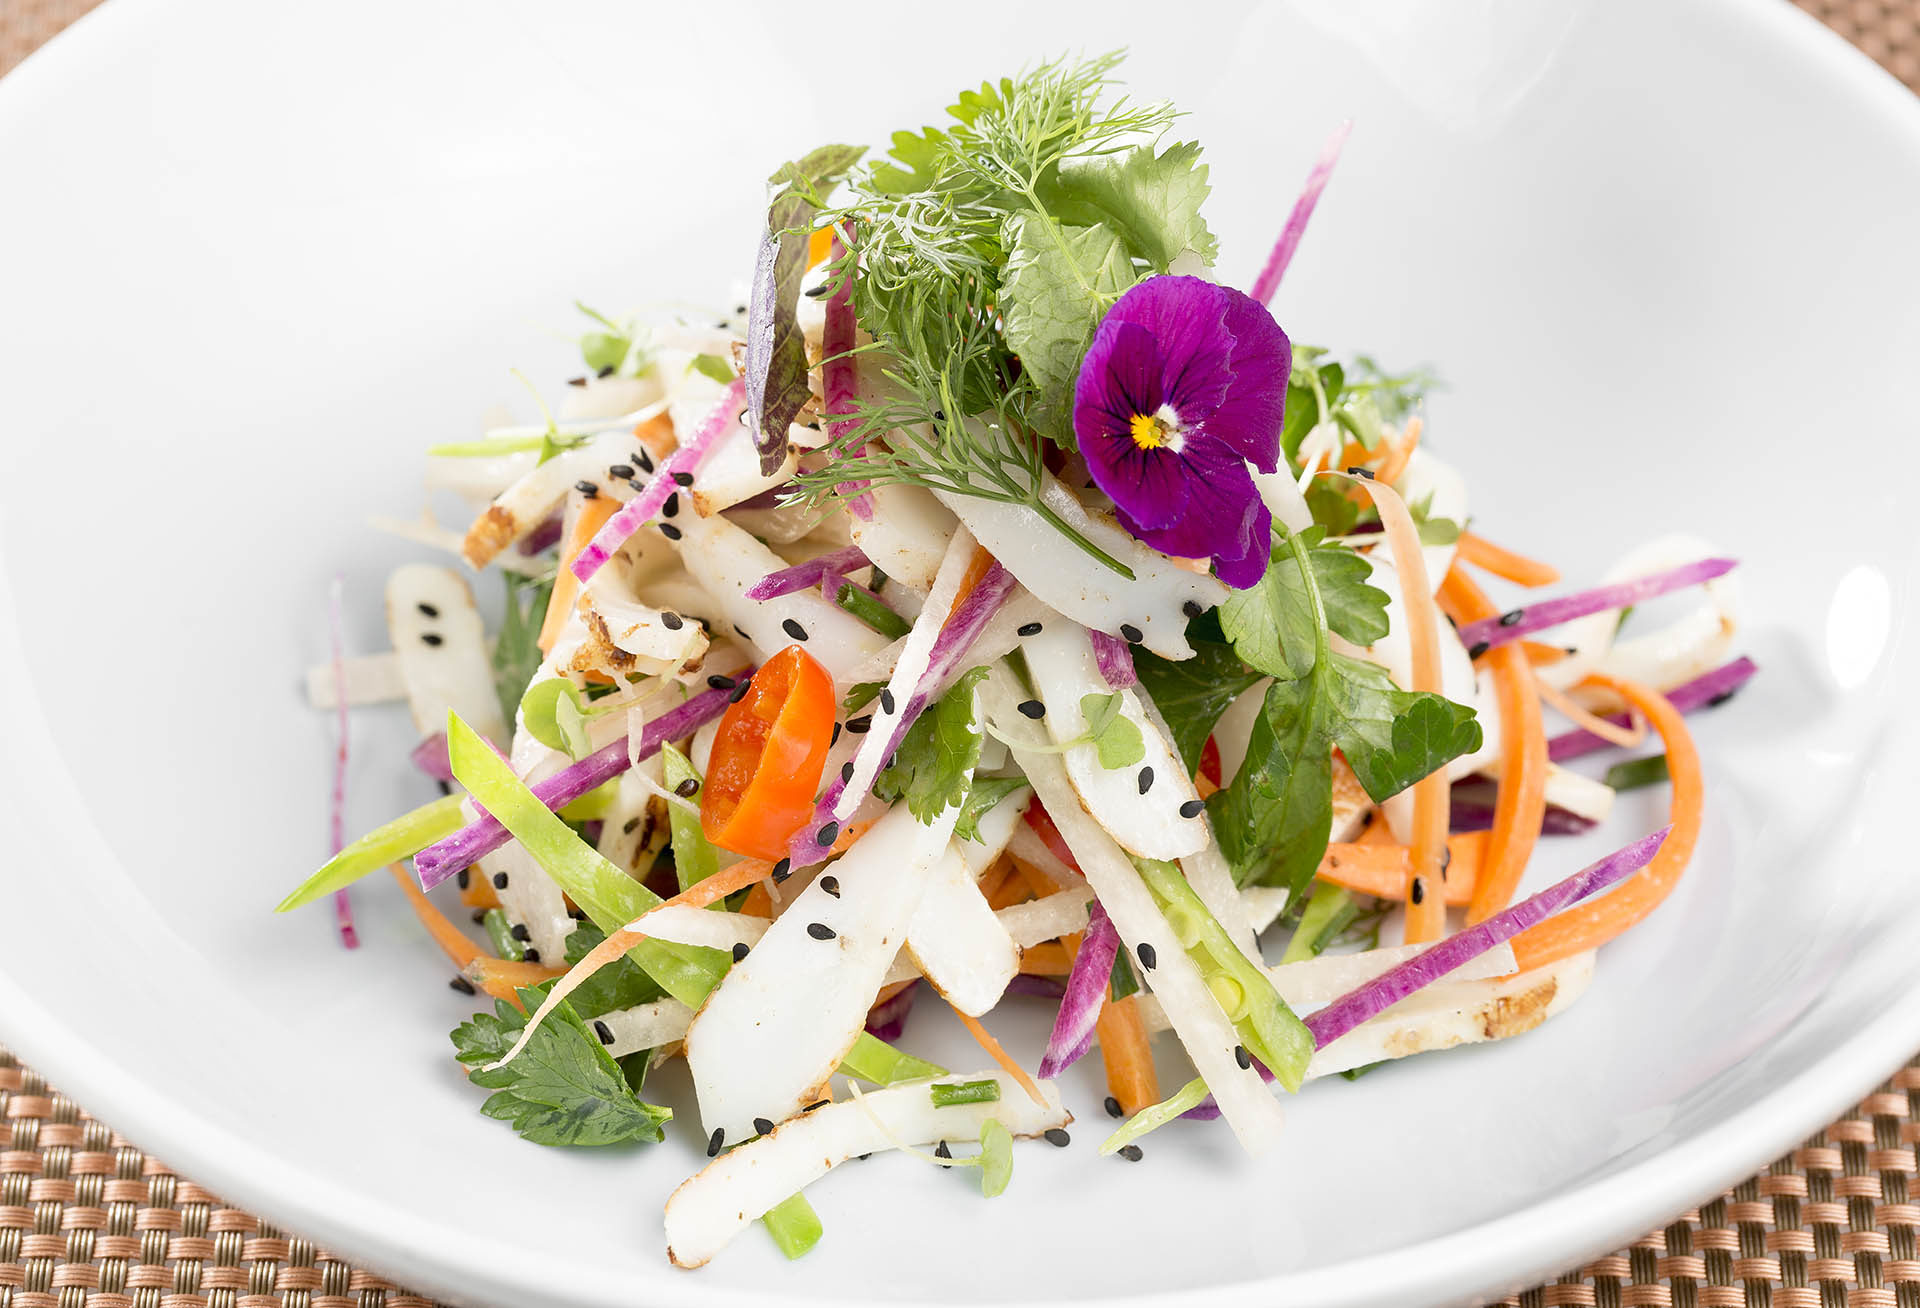 Calamari-Salad_calamari_julienne-vegetables_fine-herbs_yuzu-dressing_006-1920×1308